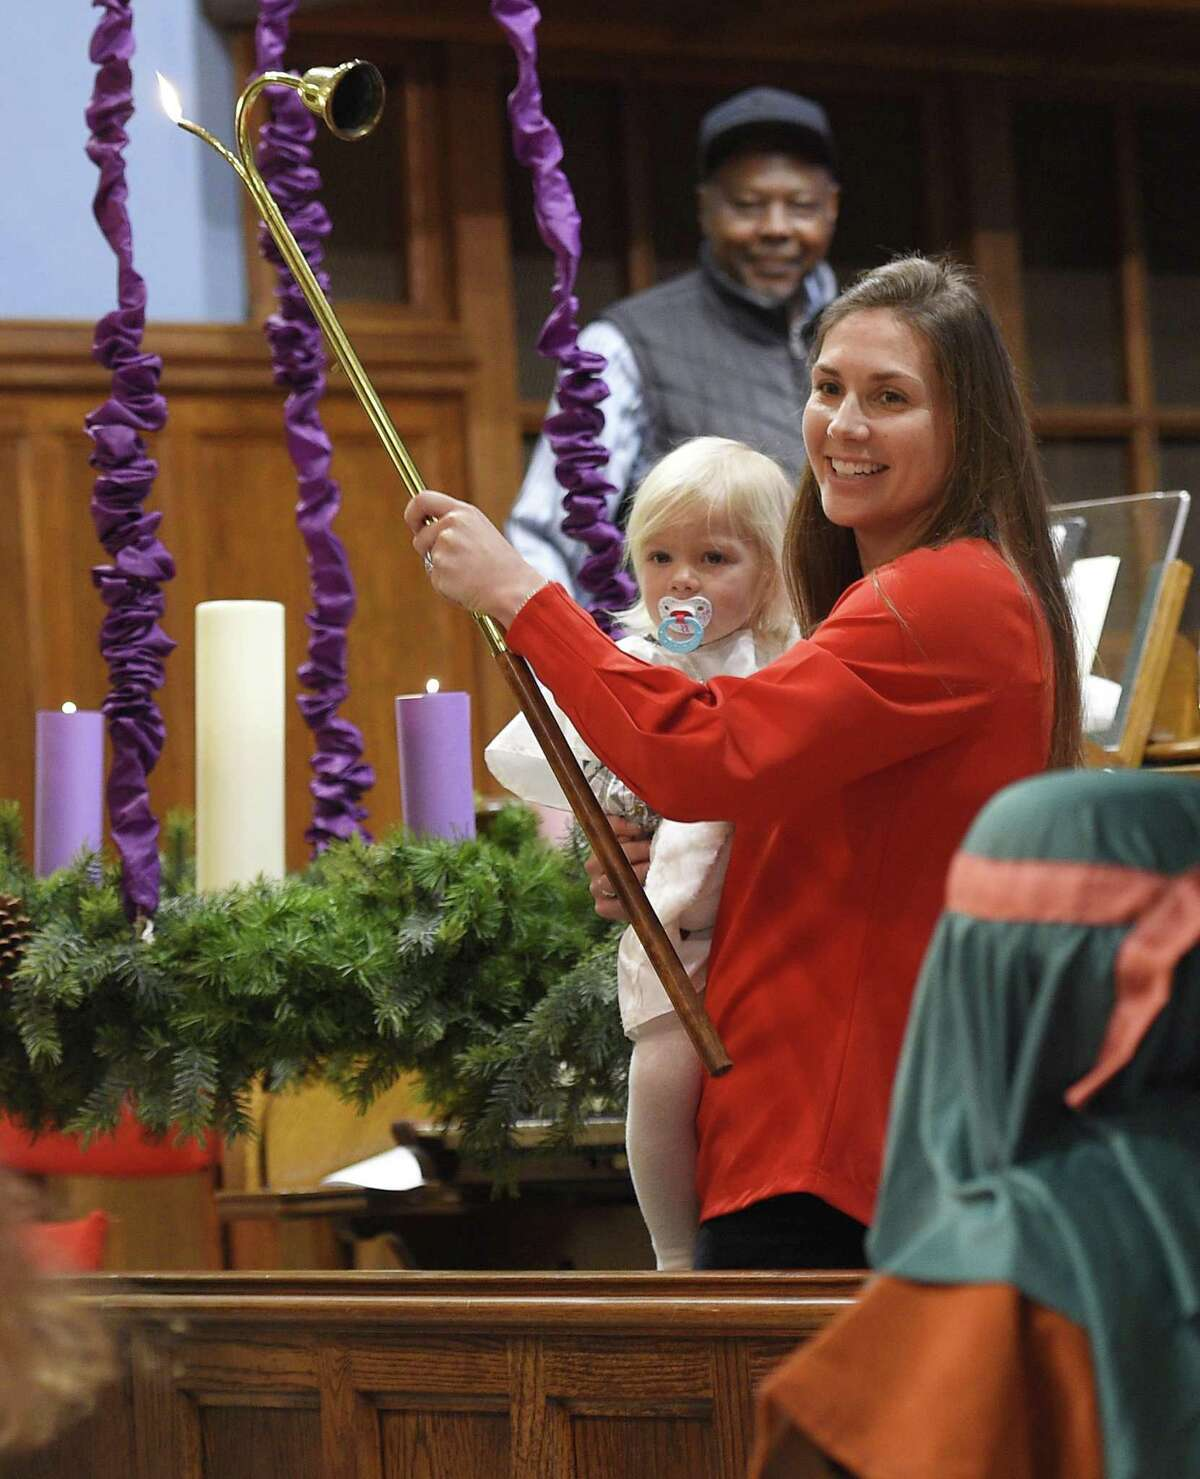 Sarah Sippel and her daughter, Remy, light the Christ candle during the Children's Christmas Eve Service at First Congregational Church of Greenwich in Old Greenwich, Conn. Monday, Dec. 24, 2018. The kids program featured a live nativity re-enactment, traditional Christmas carols, and lighting of the Christ candle.